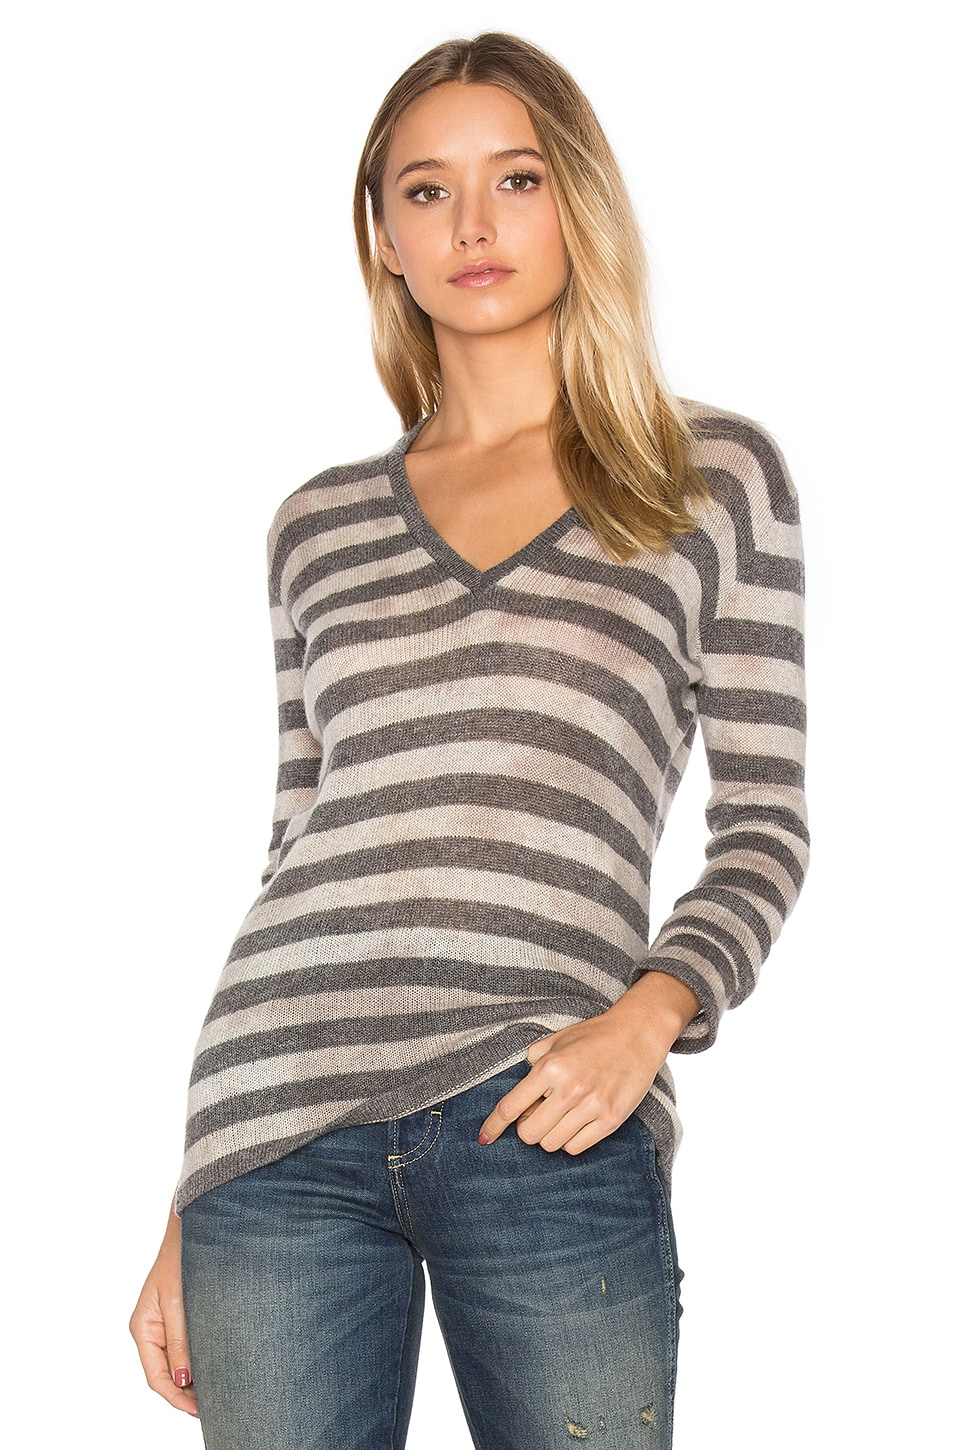 susanne karlsson Pelle V Neck Sweater in Charcoal Combo